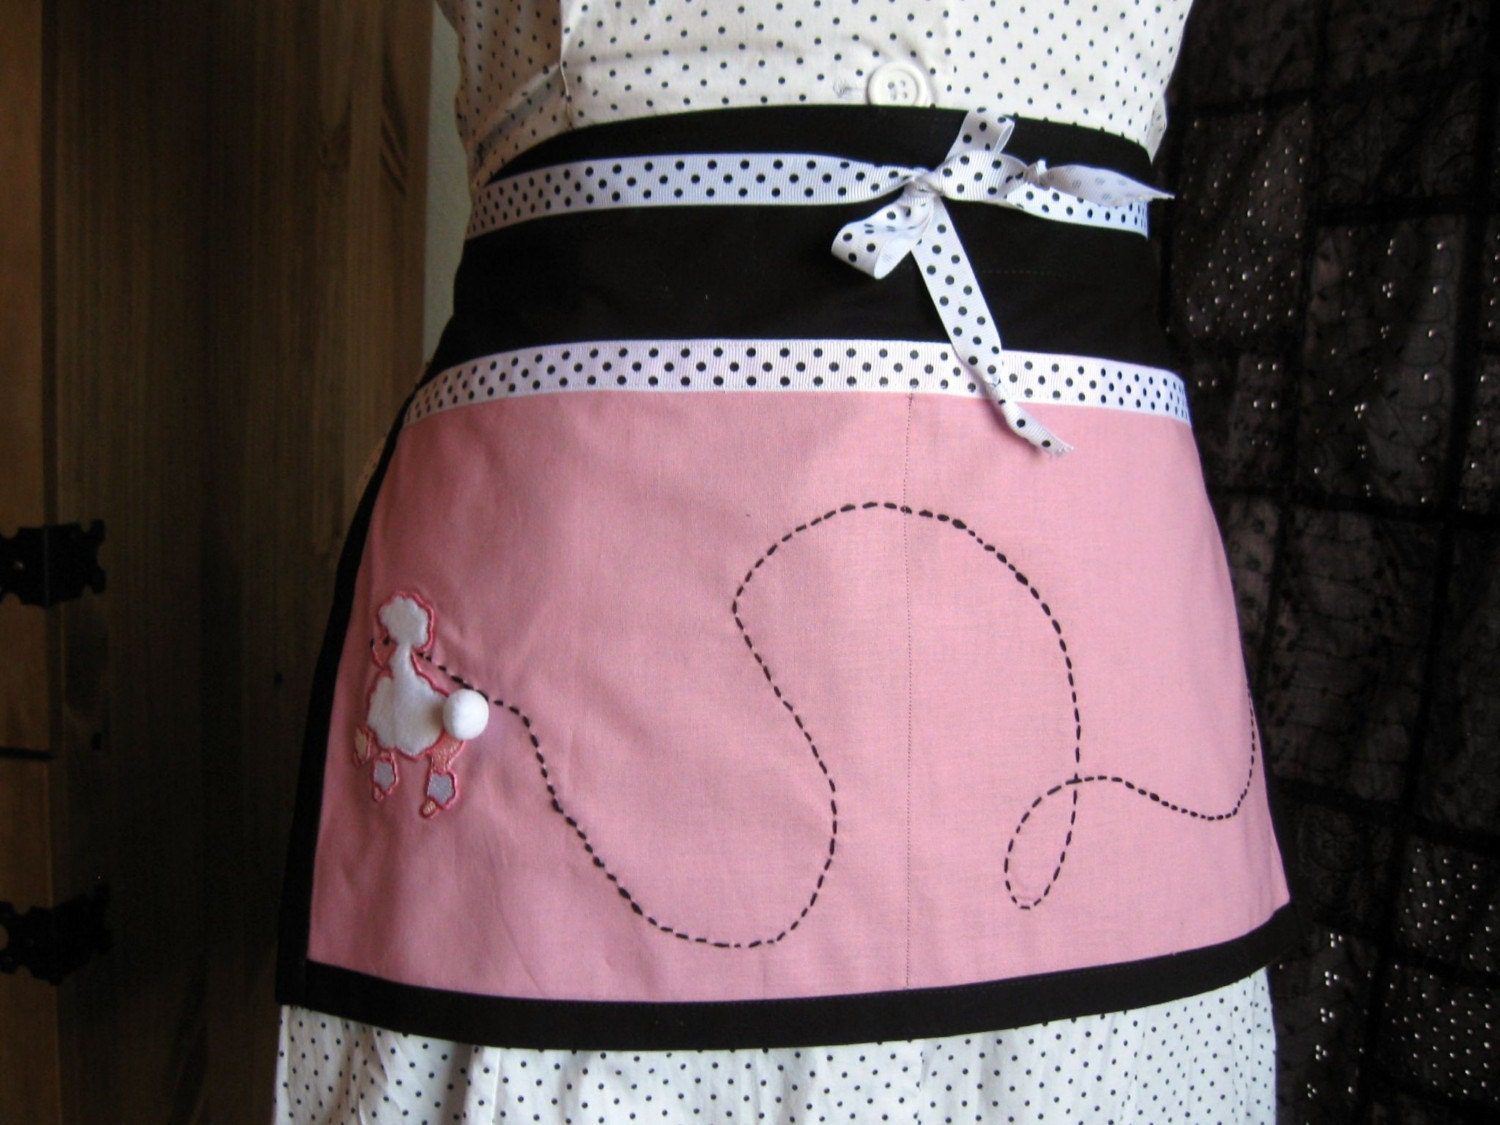 Apron - 2 Pocket Poodle Skirt - Pink